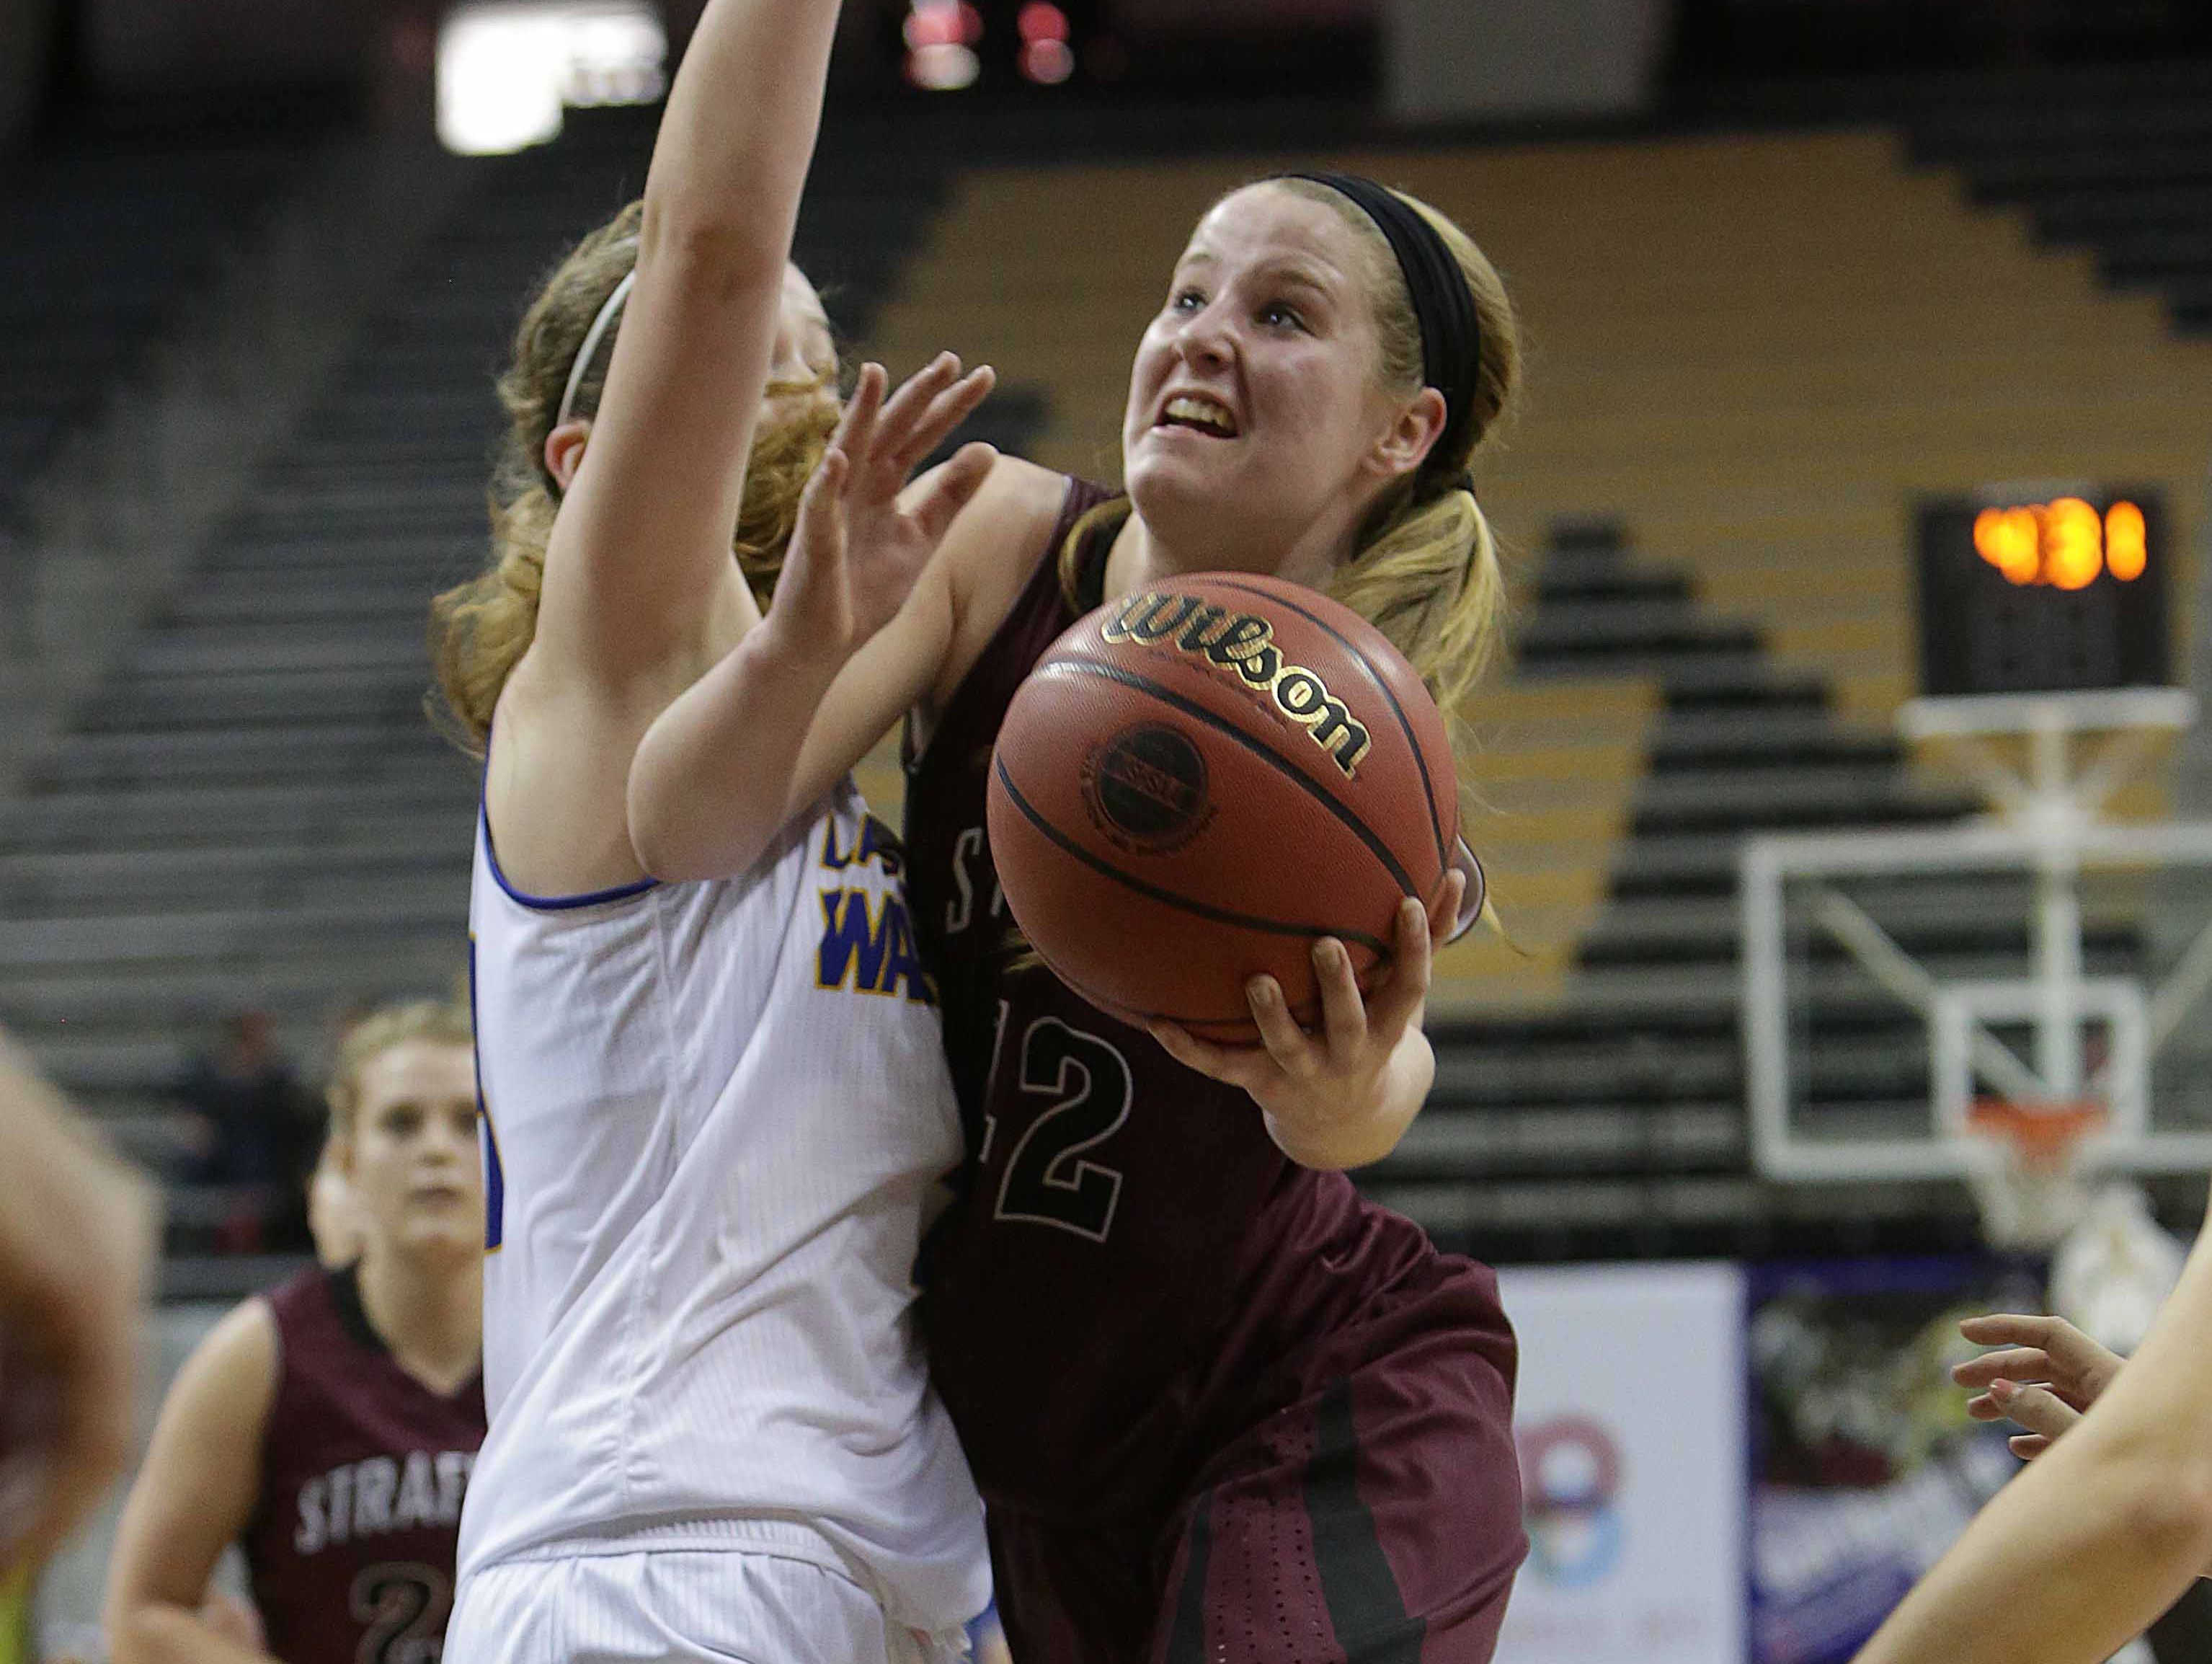 Stafford defeated St. Piux X in the opening round of the state tournament. Strafford's Hayley Frank (42) goes up for a shot as she drives to the basket against St. Pius X's Abigail Hipp. she was fouled on the play.